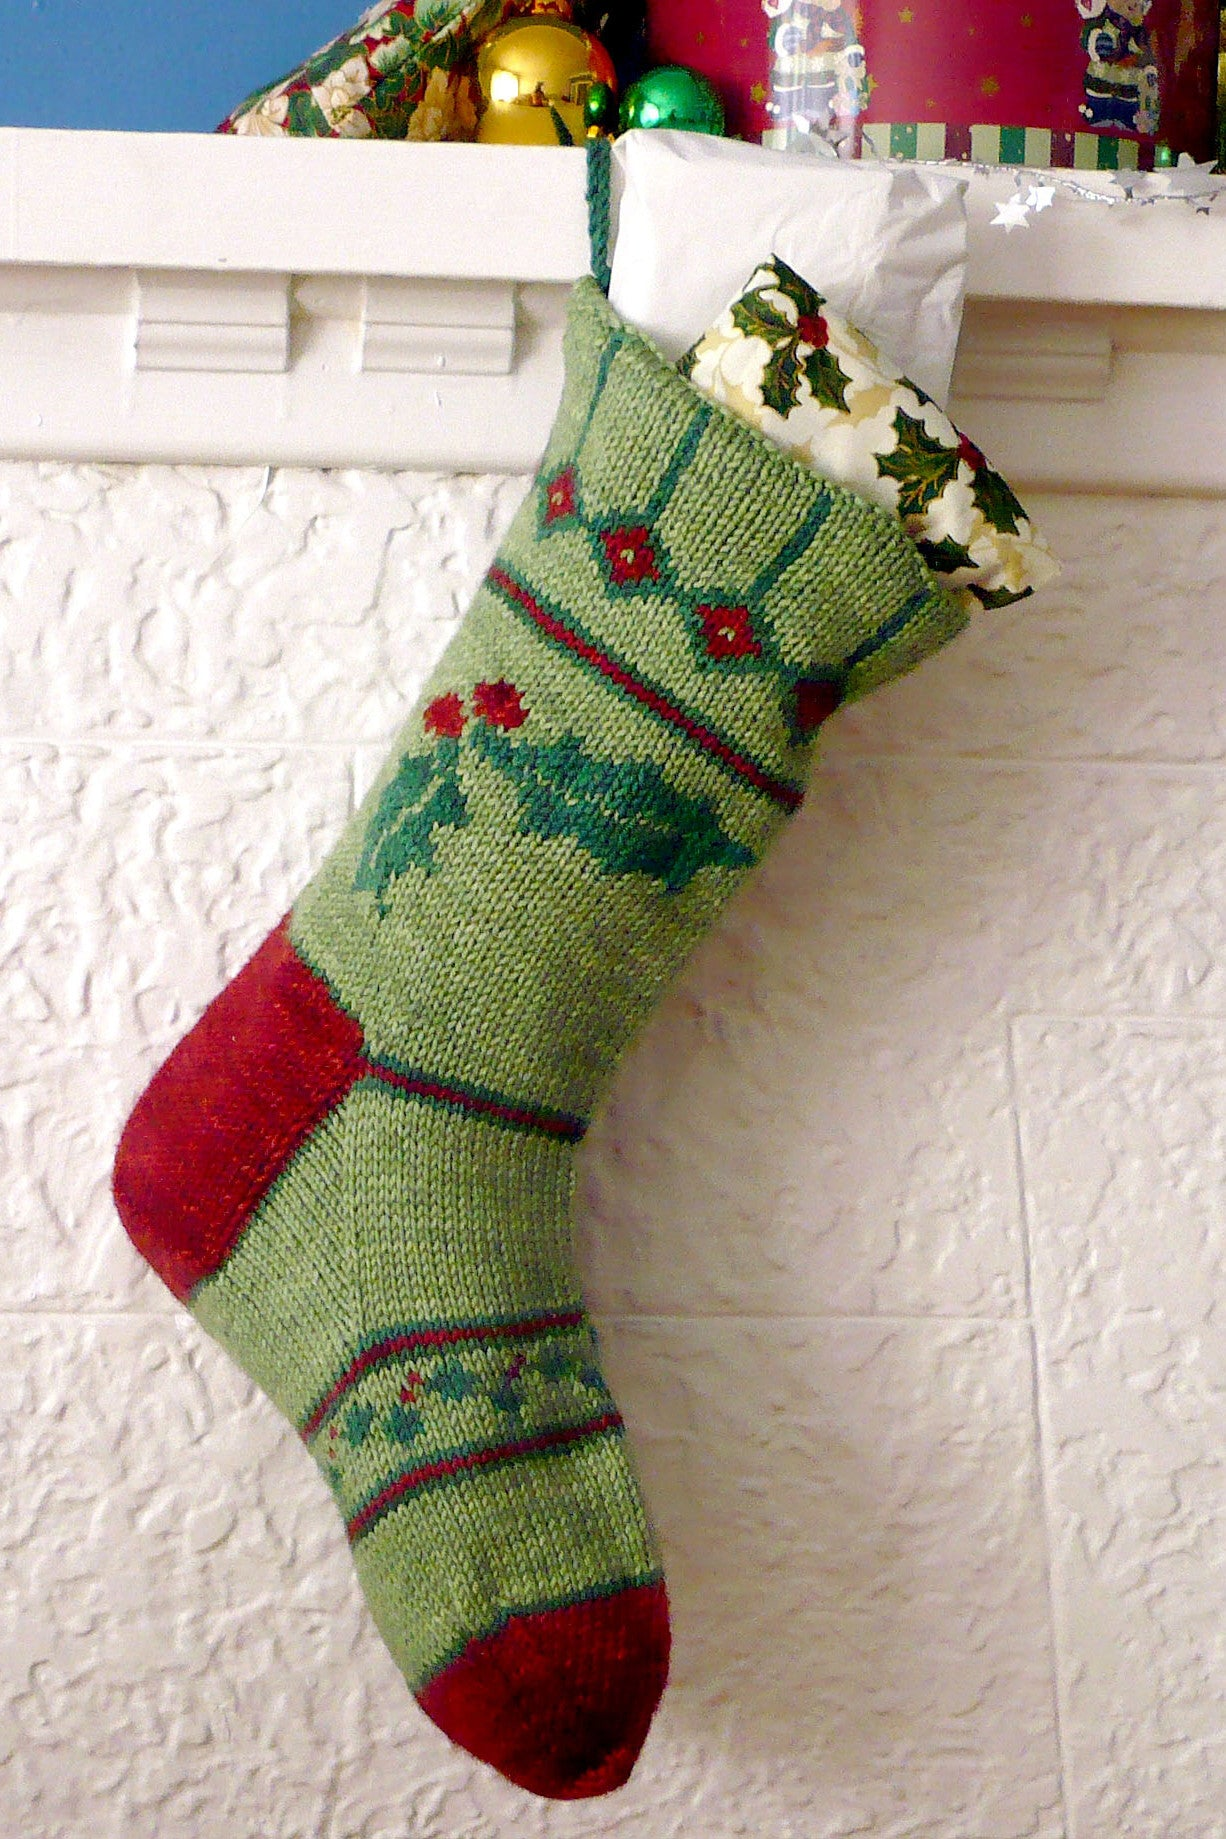 Christmas Stockings Knitting Kits; Evergreen